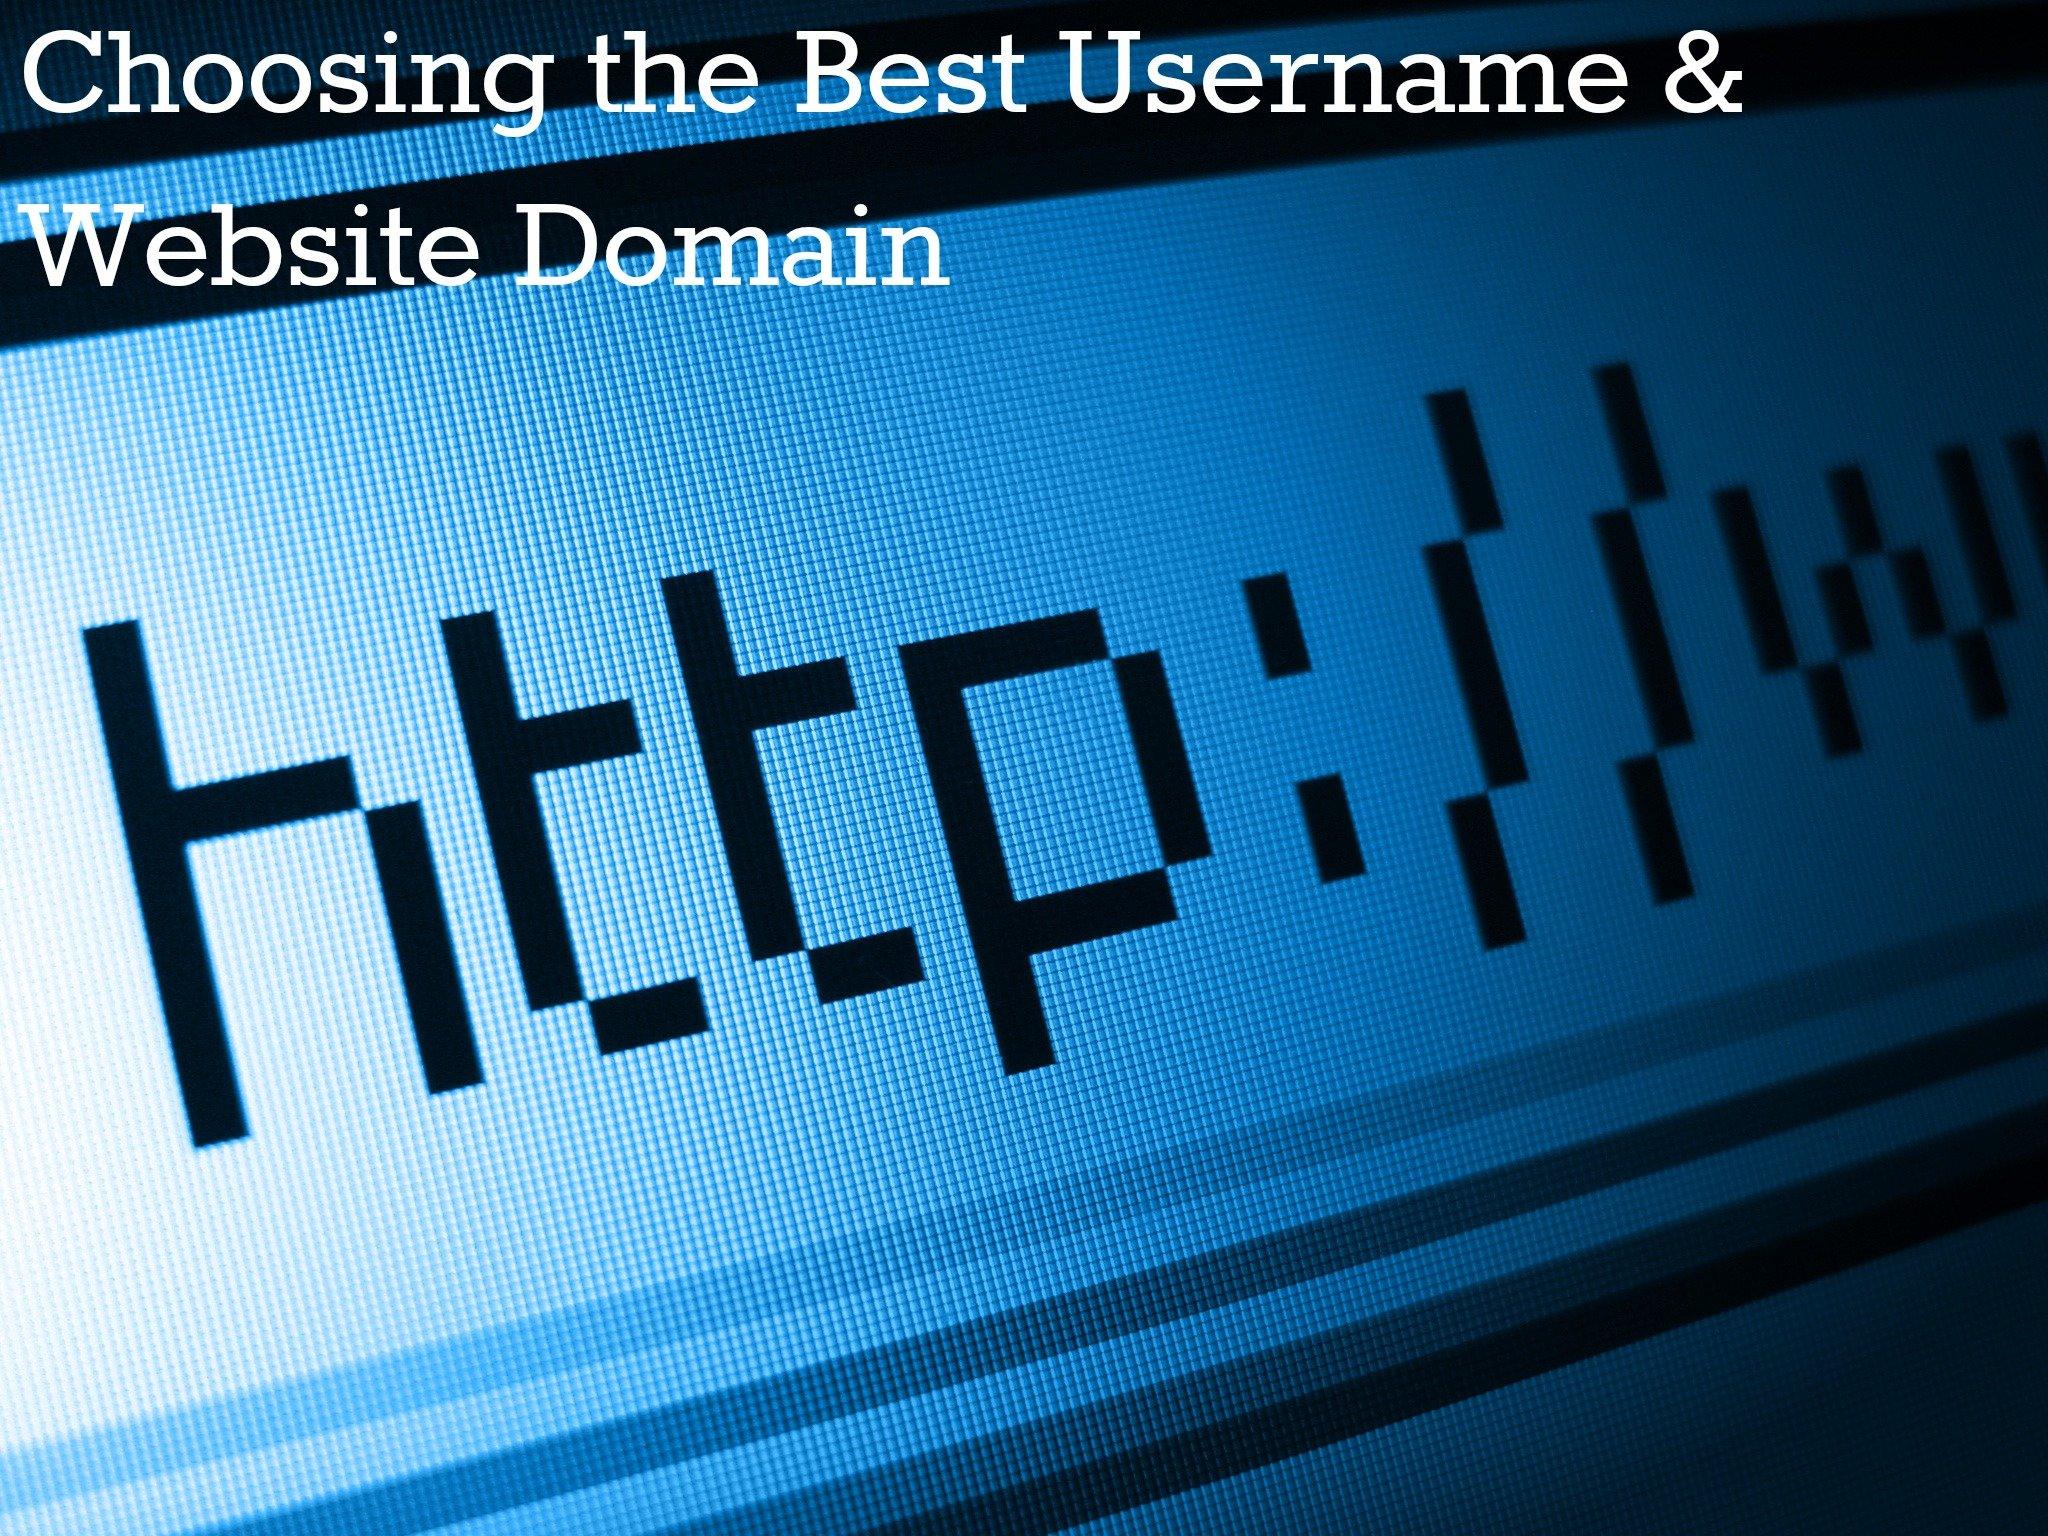 Best Username | Choosing Best Website Domain & Social Media Name